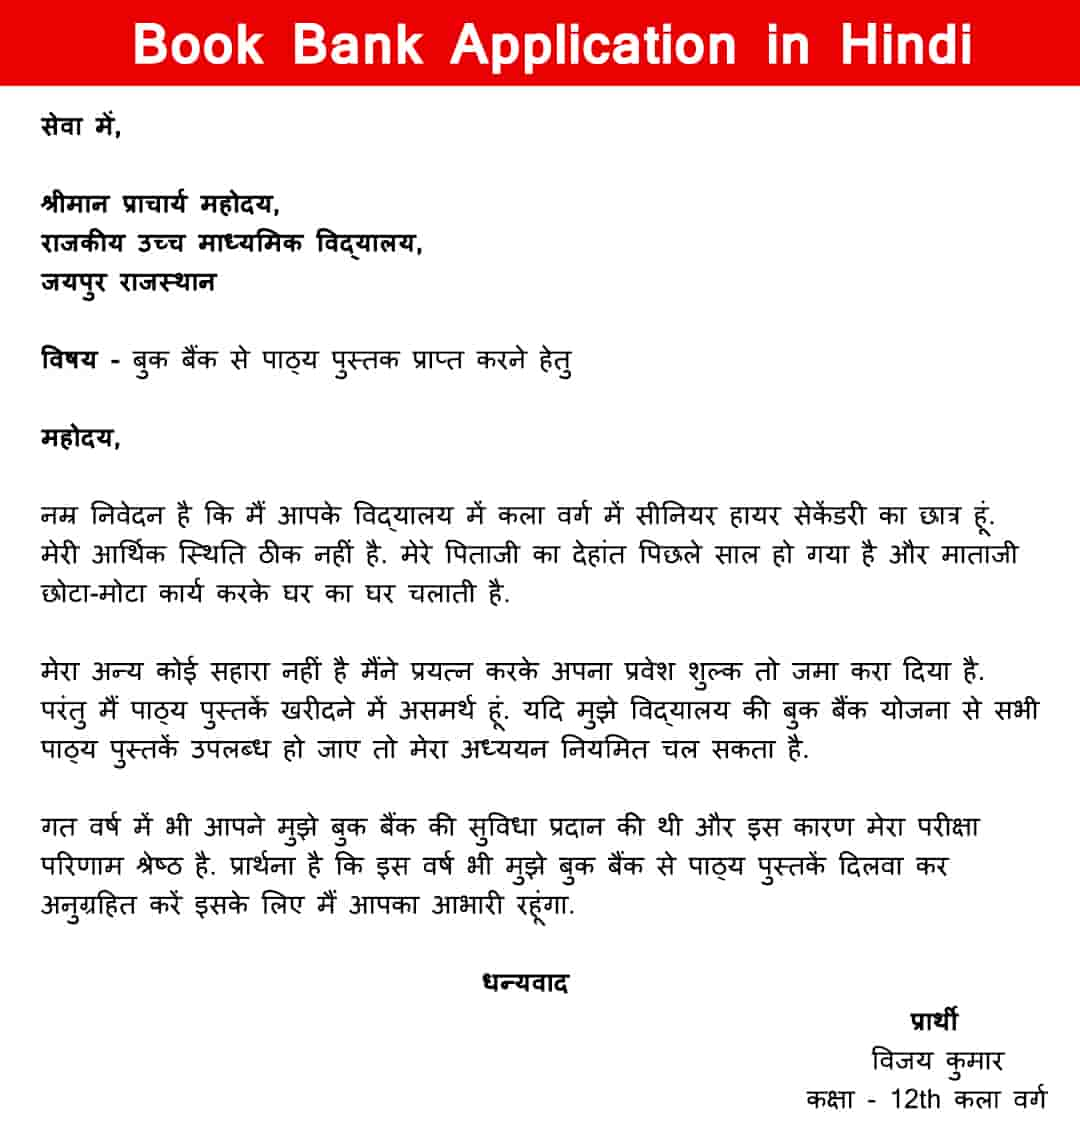 Book Bank Application in Hindi